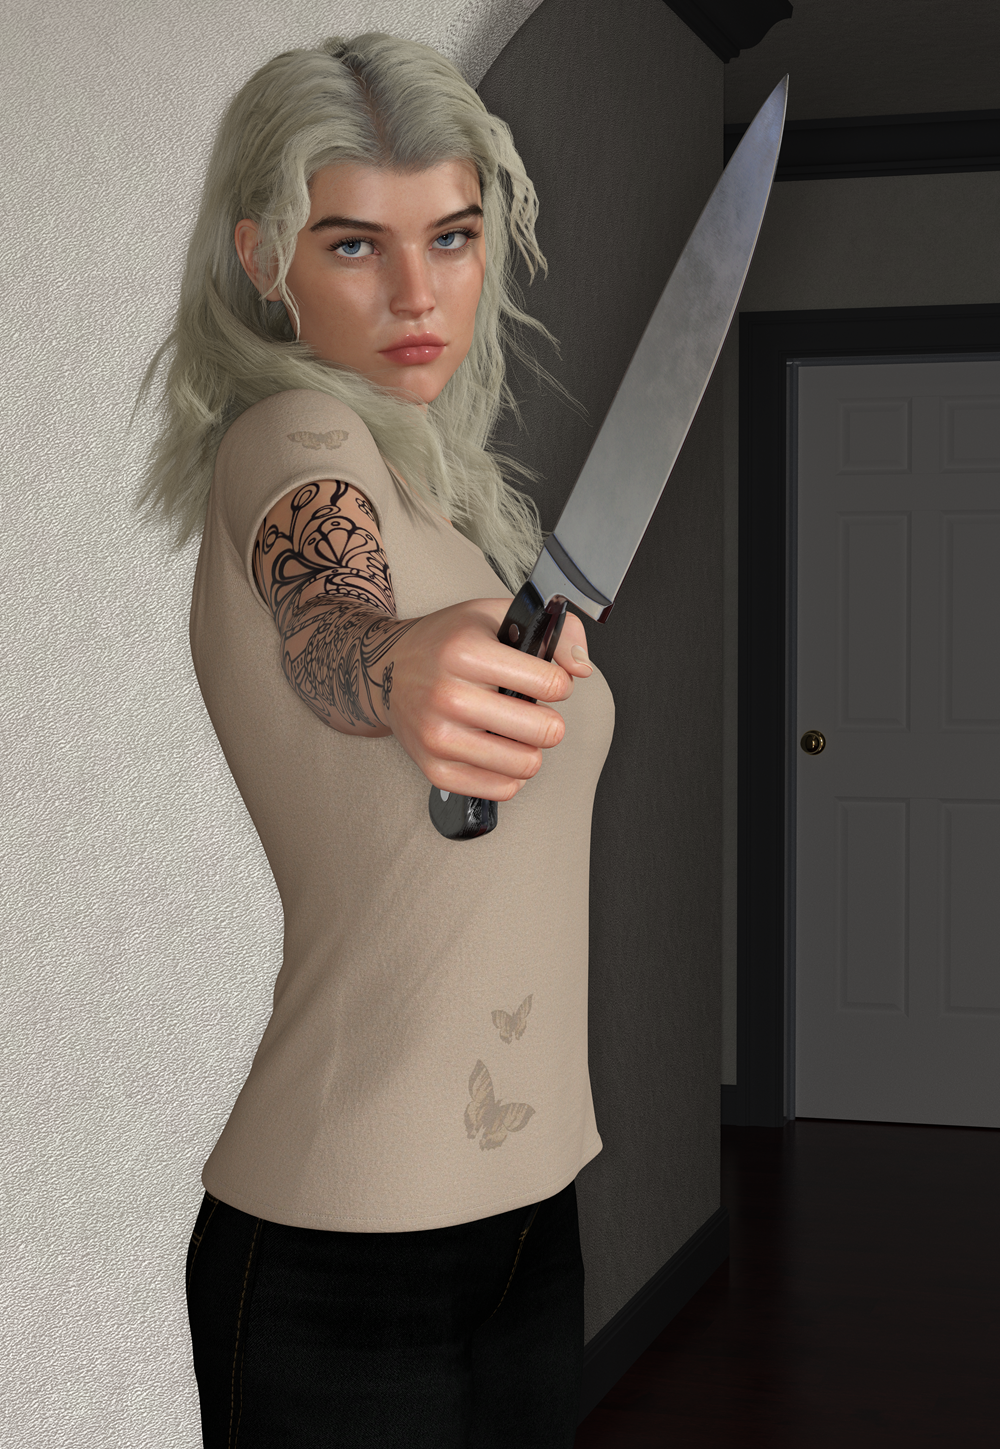 White Female with Knife